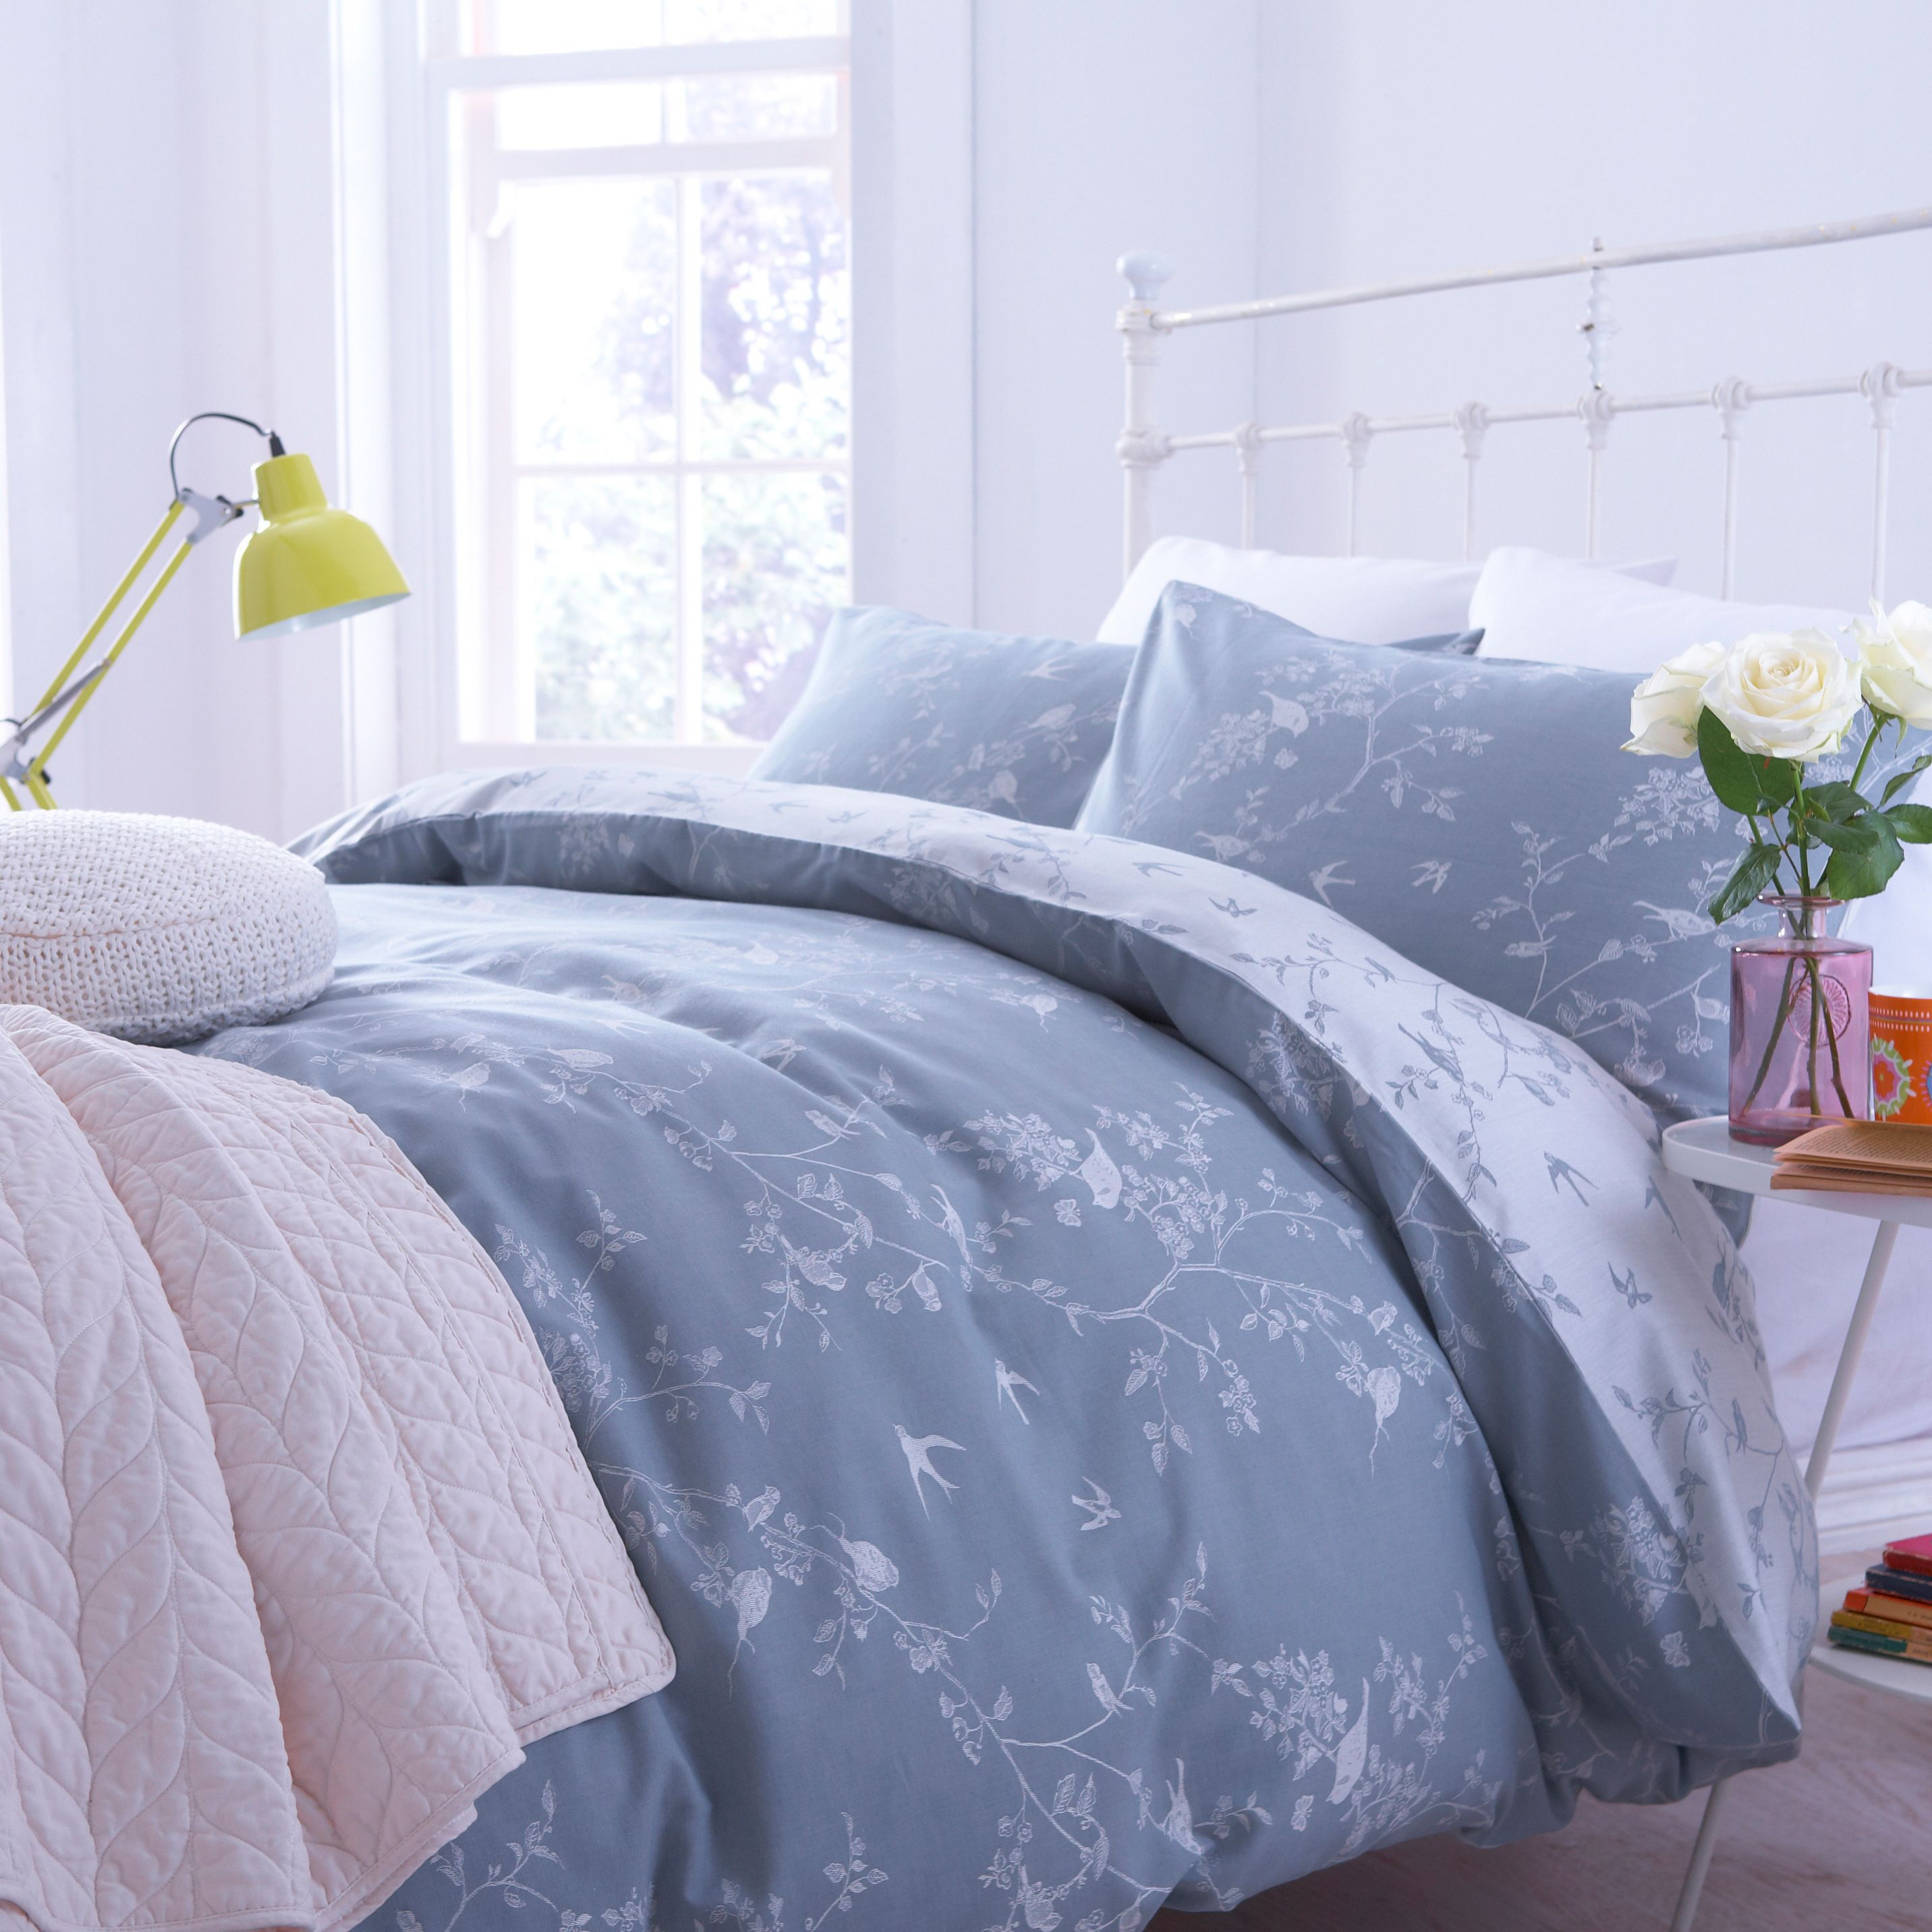 Songbirds duvet cover double